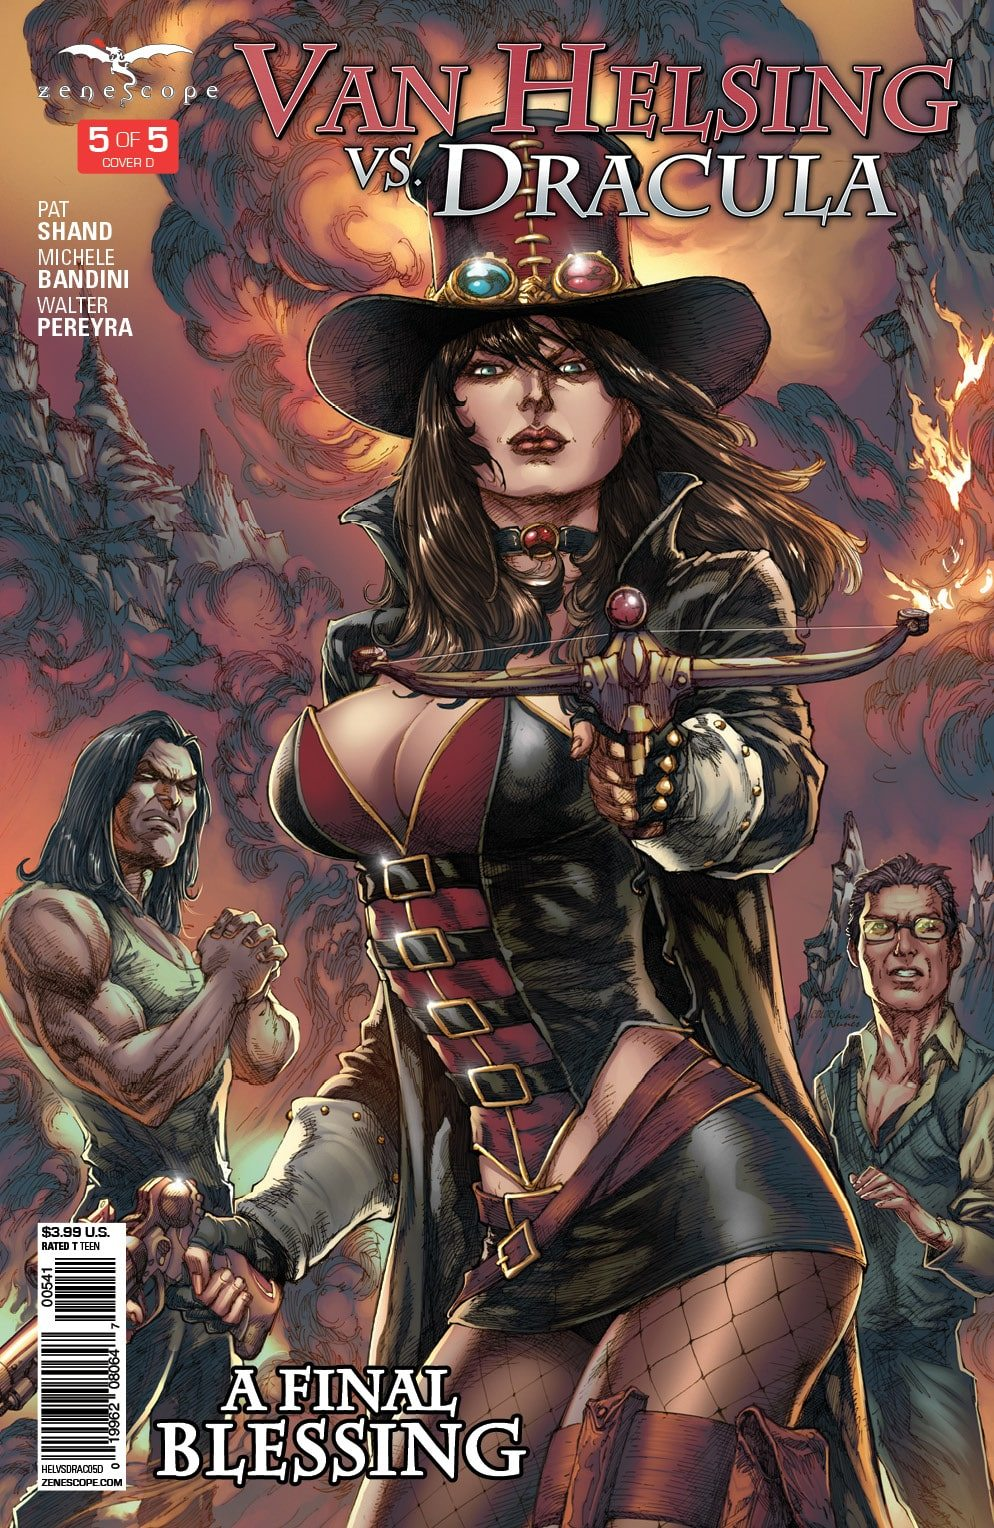 Van Helsing vs. Dracula #5: A Final Blessing